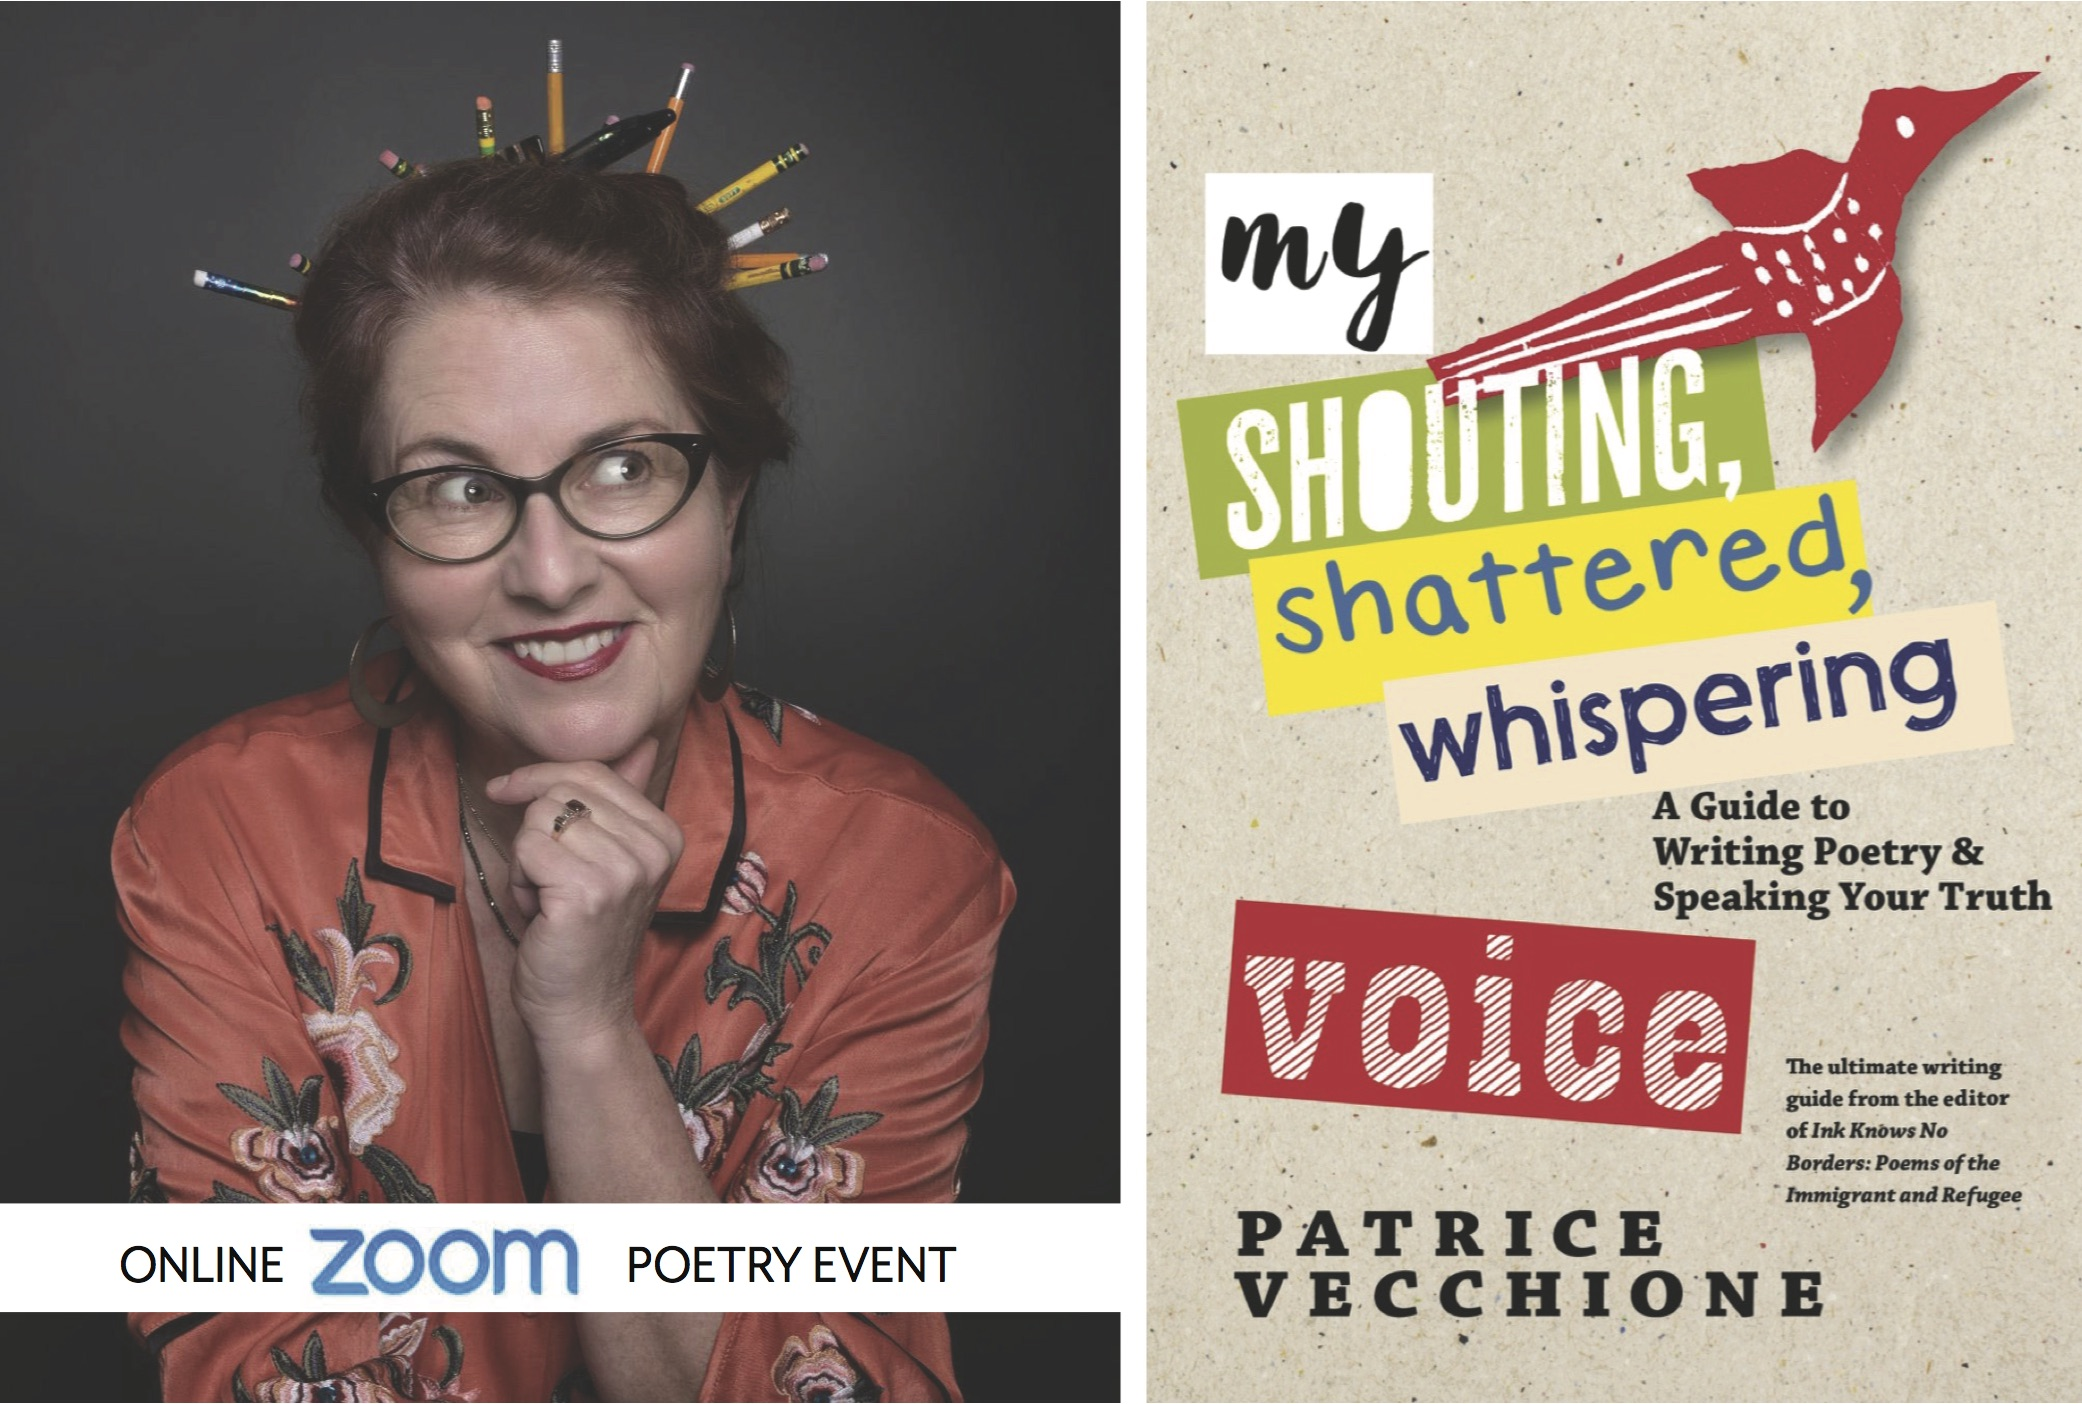 Online with ZOOM: Patrice Vecchione, My Shouting, Shattered, Whispering Voice